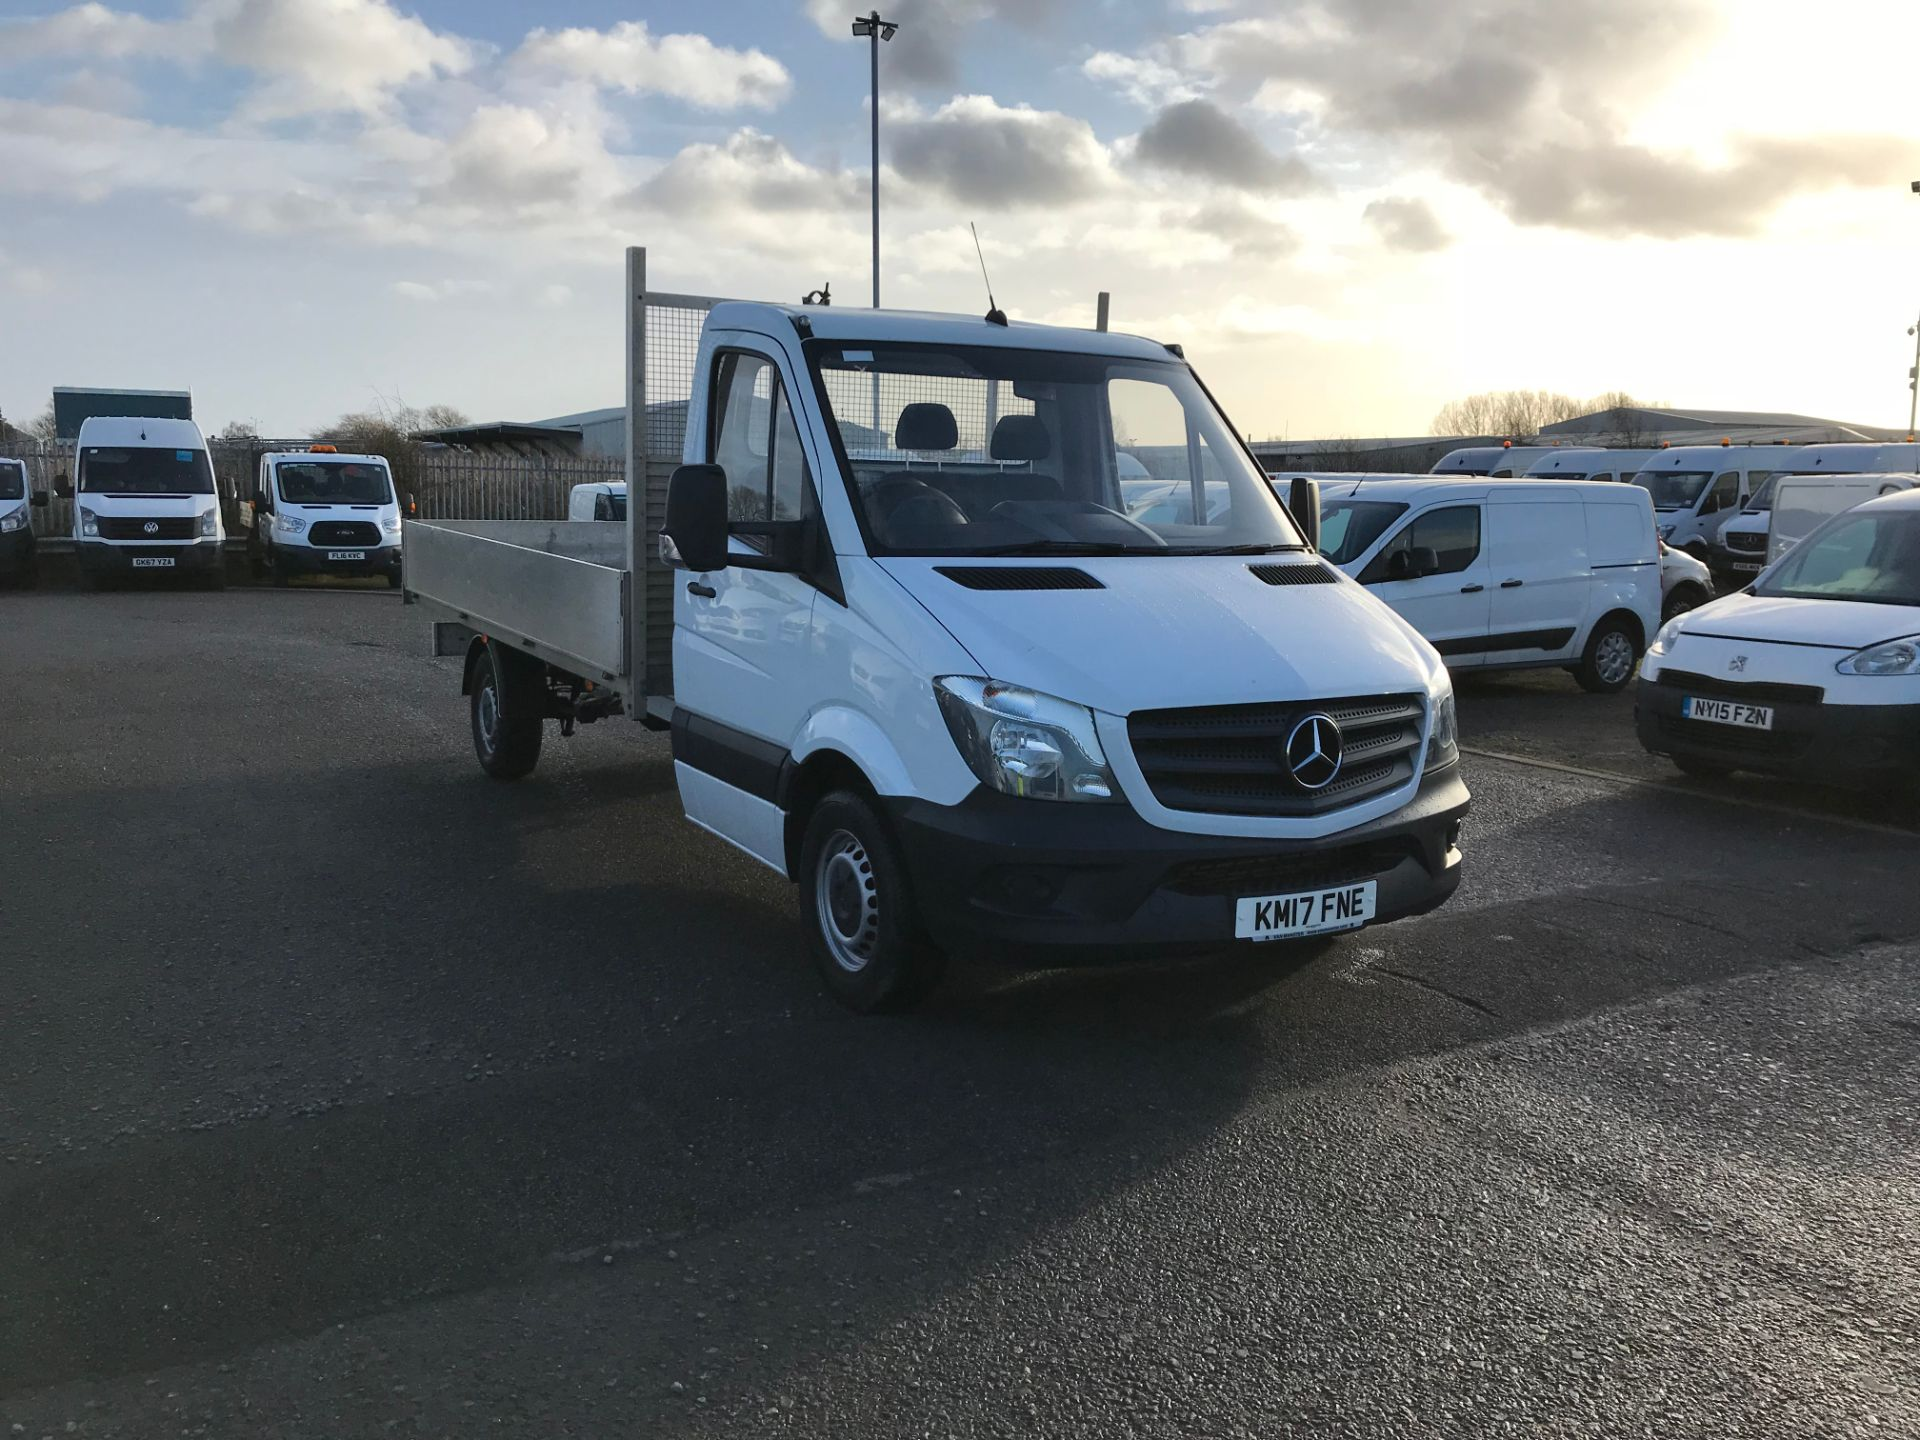 2017 Mercedes-Benz Sprinter 3.5T Chassis Cab (KM17FNE)